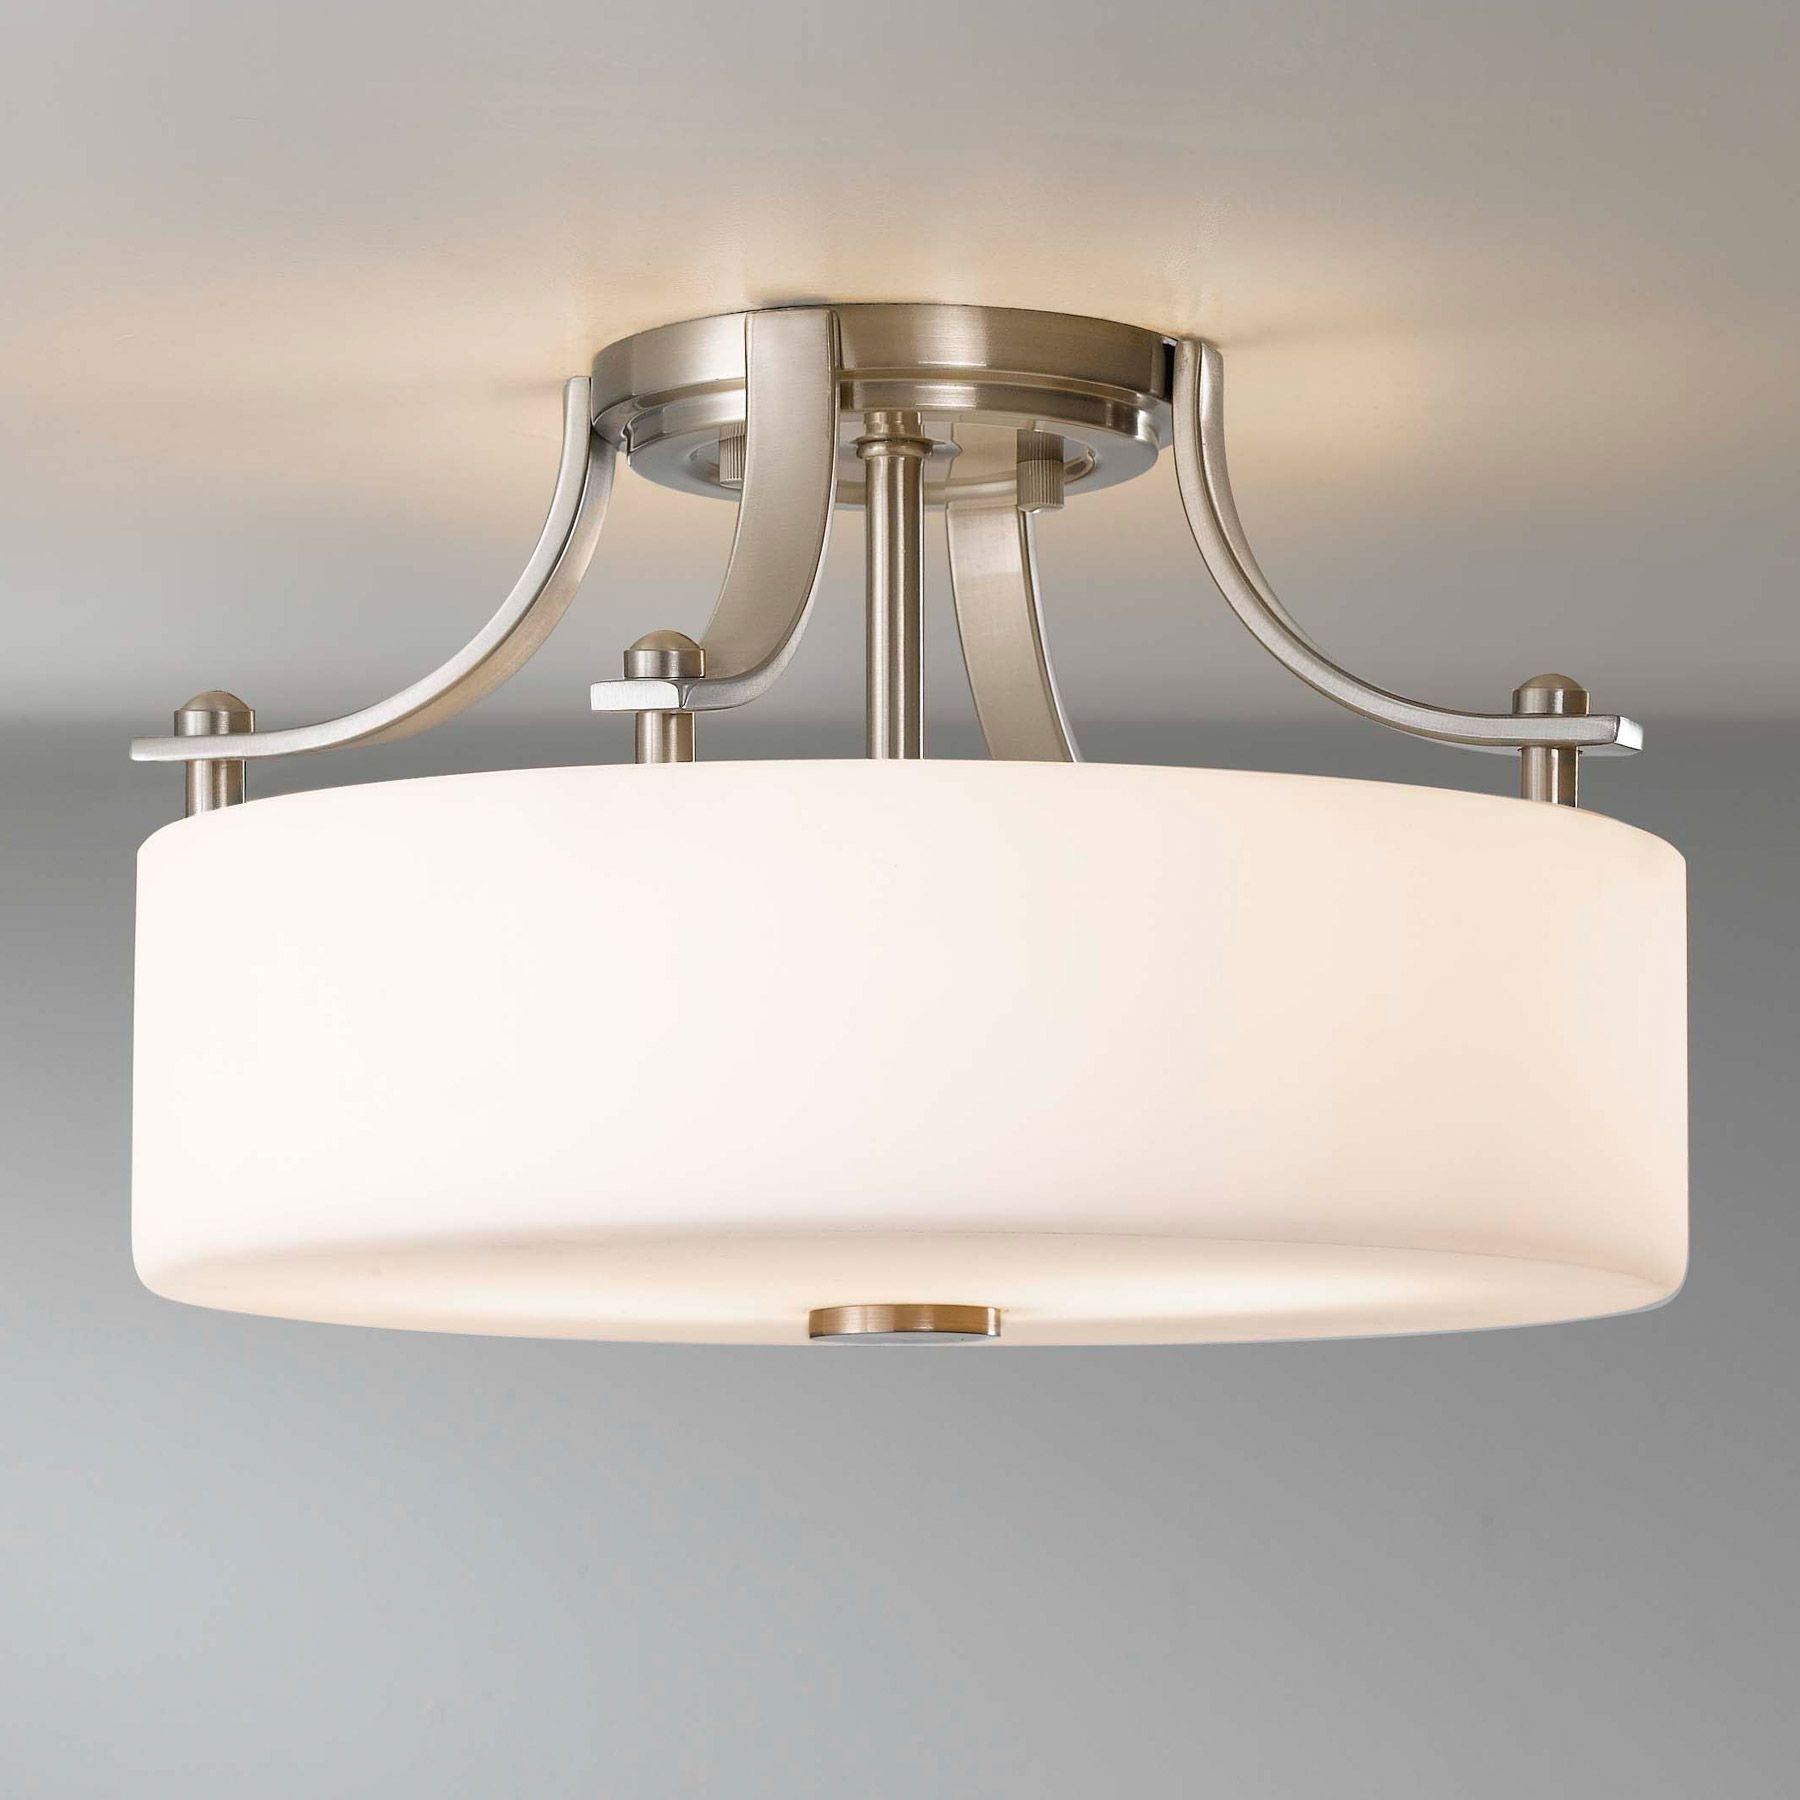 Flush Mount Kitchen Lighting White Flushmount Light Fixture Flush Mount Ceiling Light